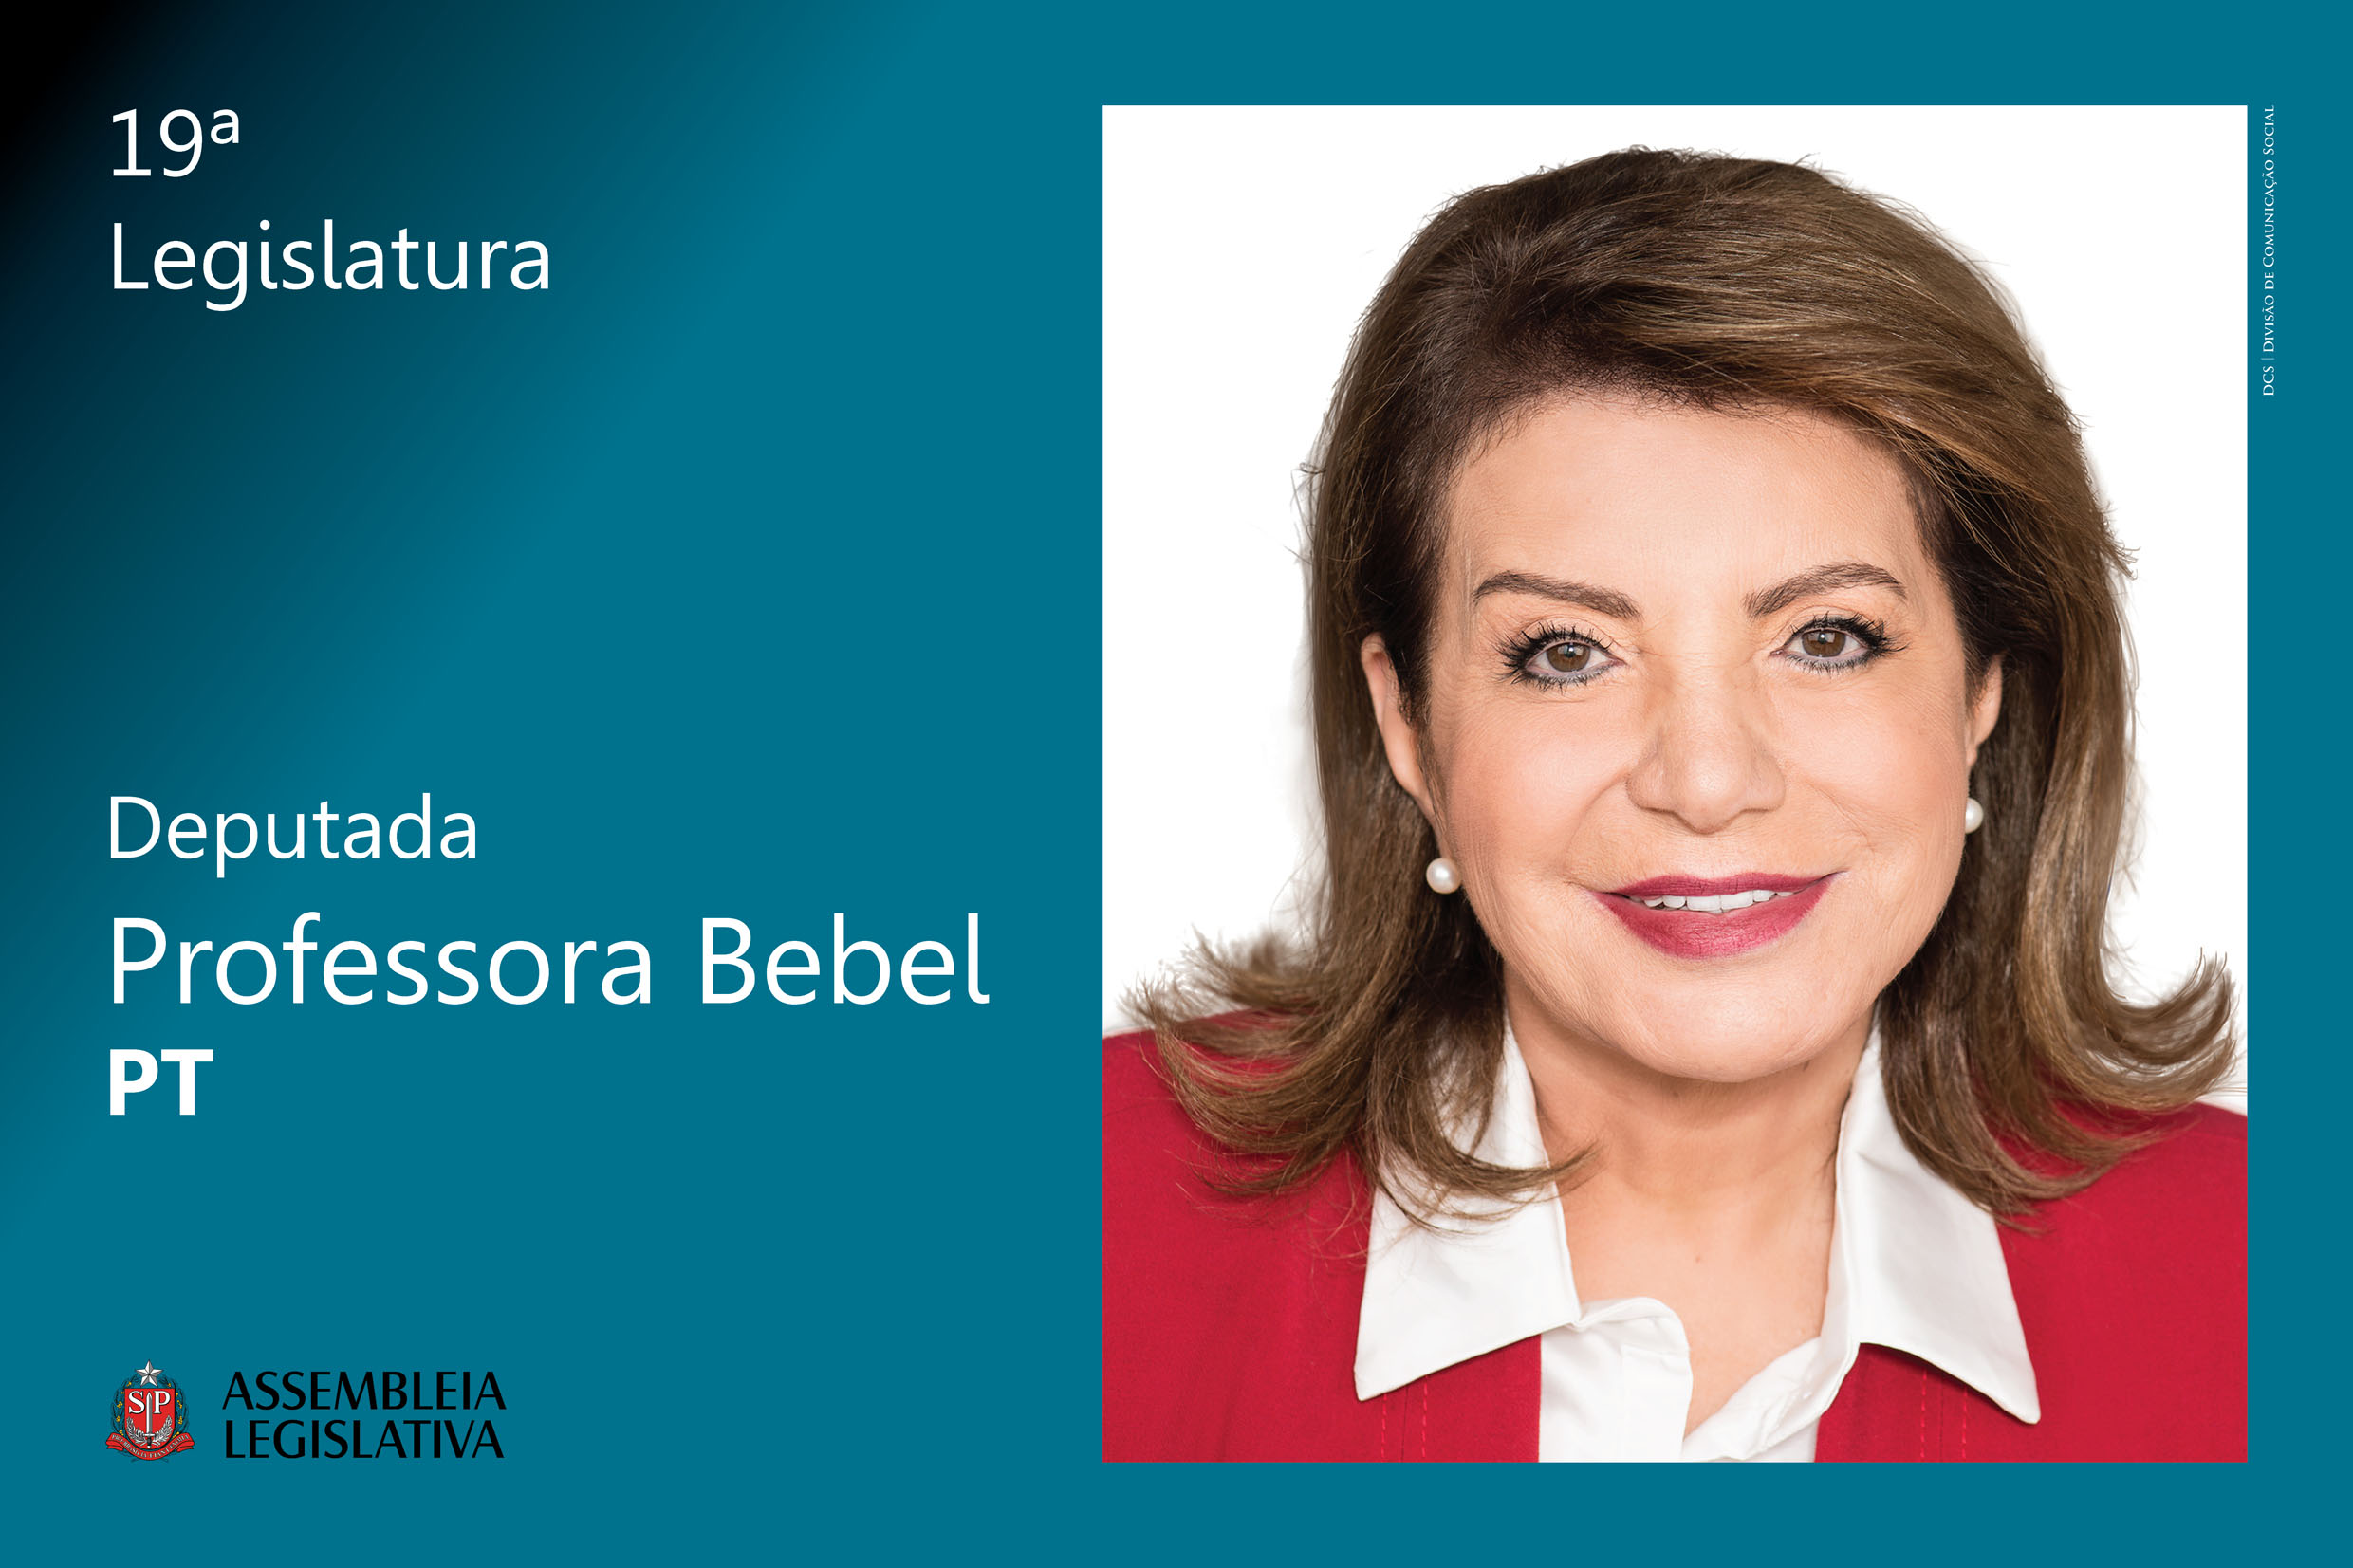 Professora Bebel (PT)<a style='float:right' href='https://www3.al.sp.gov.br/repositorio/noticia/N-03-2019/fg231274.jpg' target=_blank><img src='/_img/material-file-download-white.png' width='14px' alt='Clique para baixar a imagem'></a>